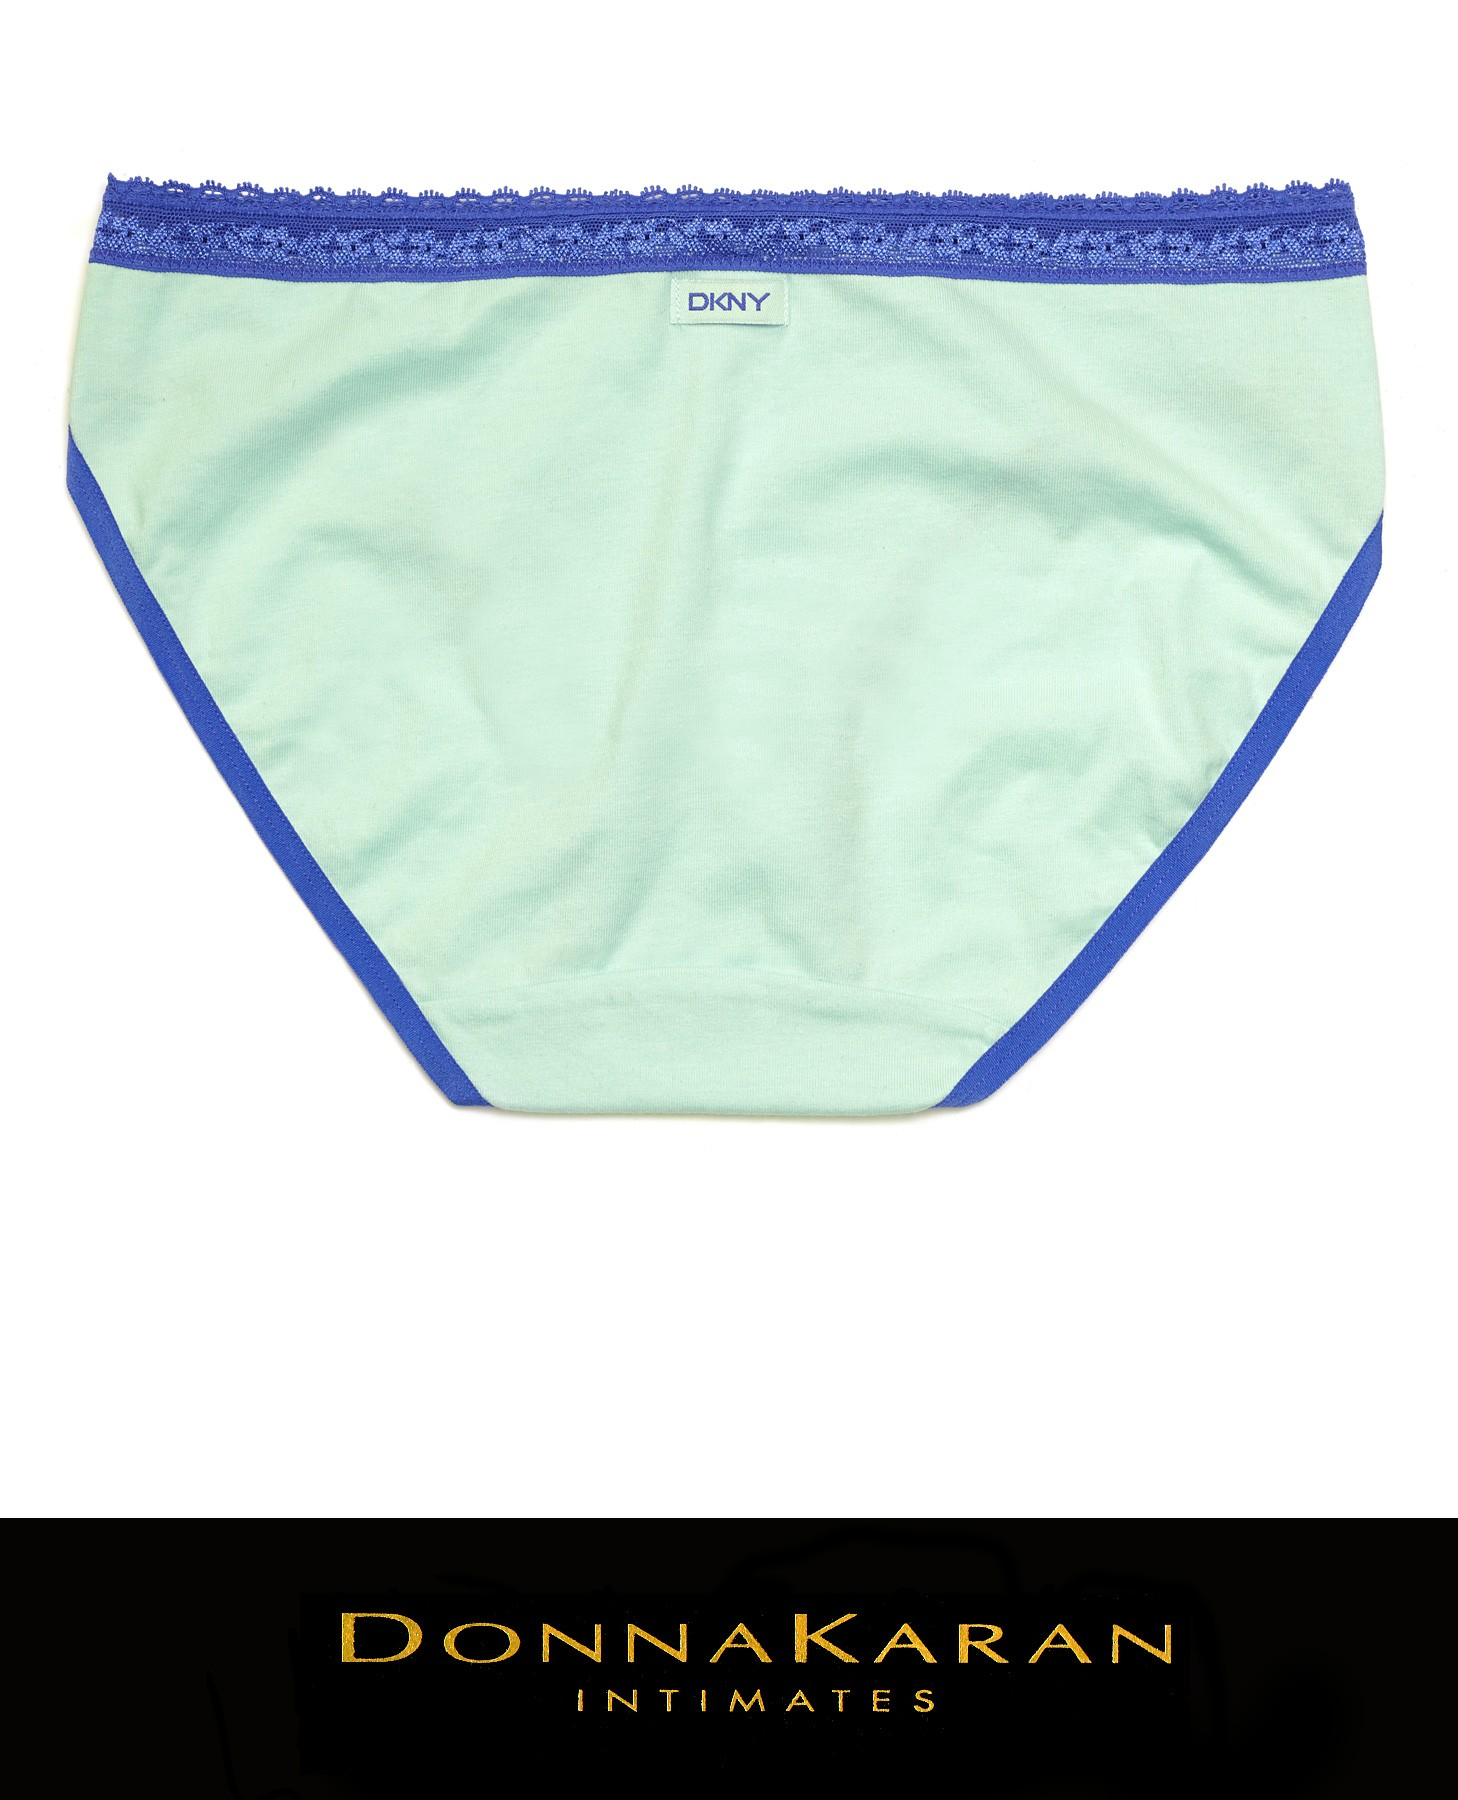 eef3e9bcd4 DKNY Delicate Essentials Bikini Panty at The Lingerie Shop New York